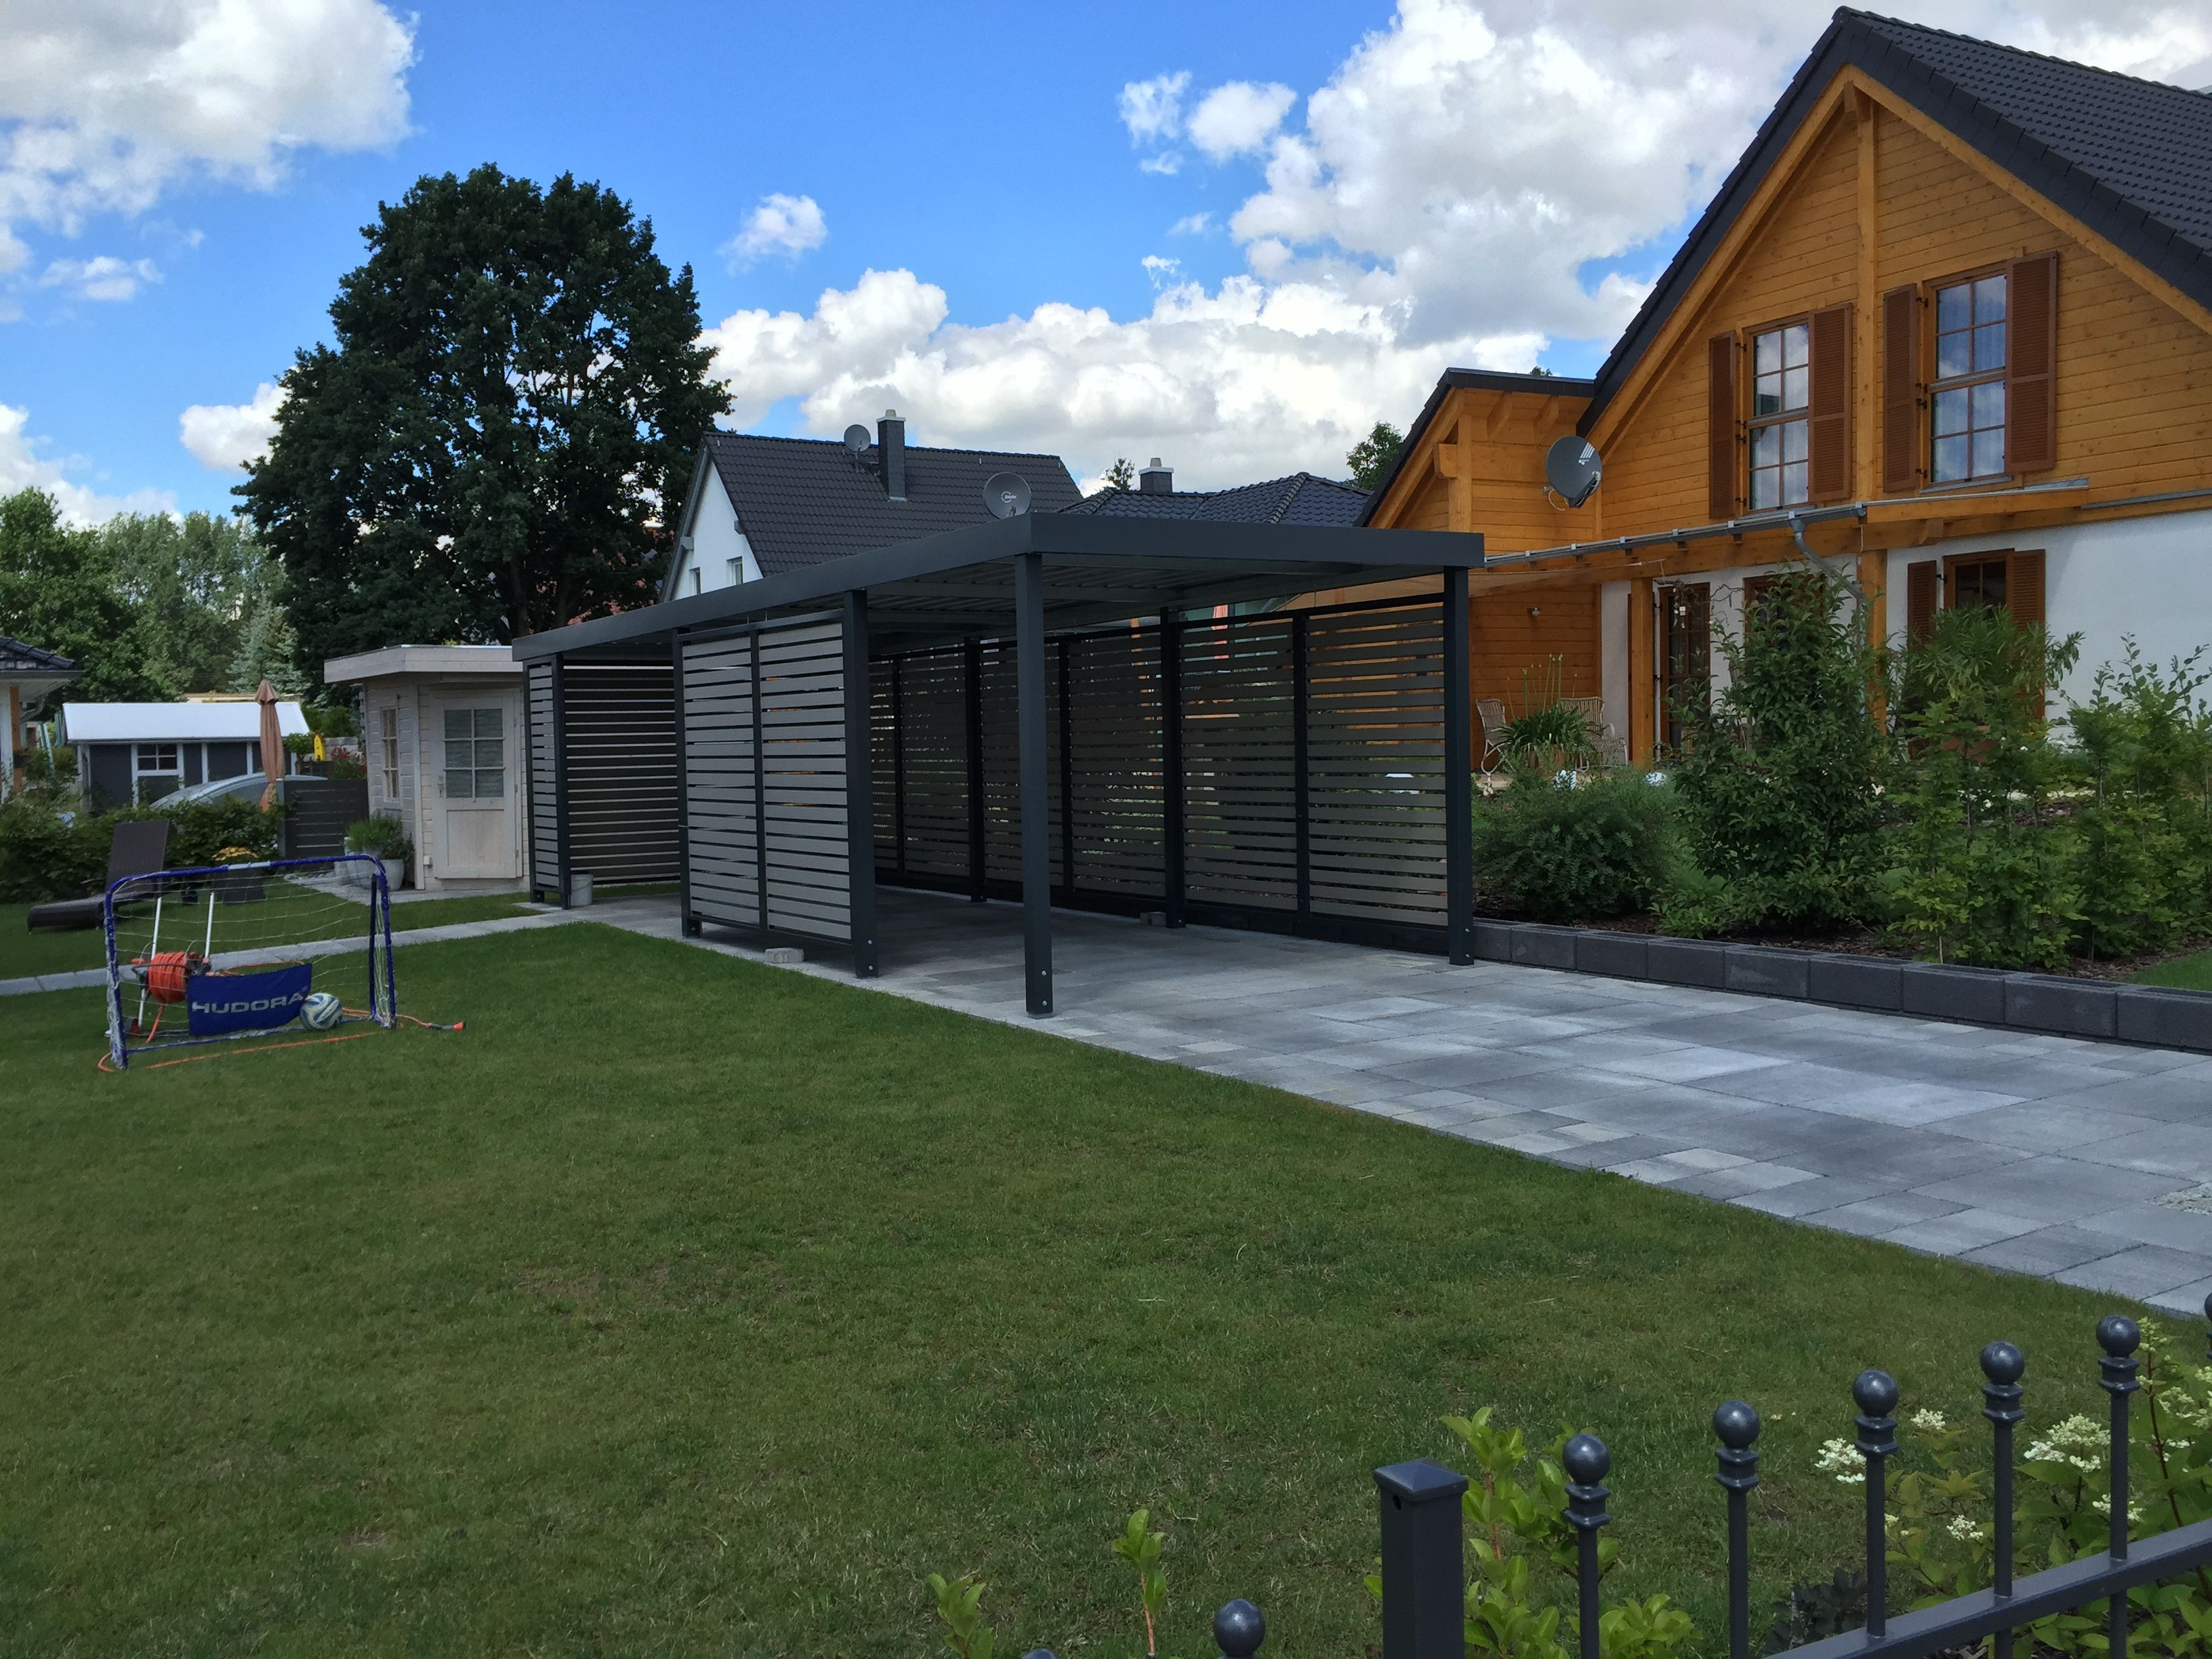 carport von siebau mit sichtschutz aus wpc carport. Black Bedroom Furniture Sets. Home Design Ideas